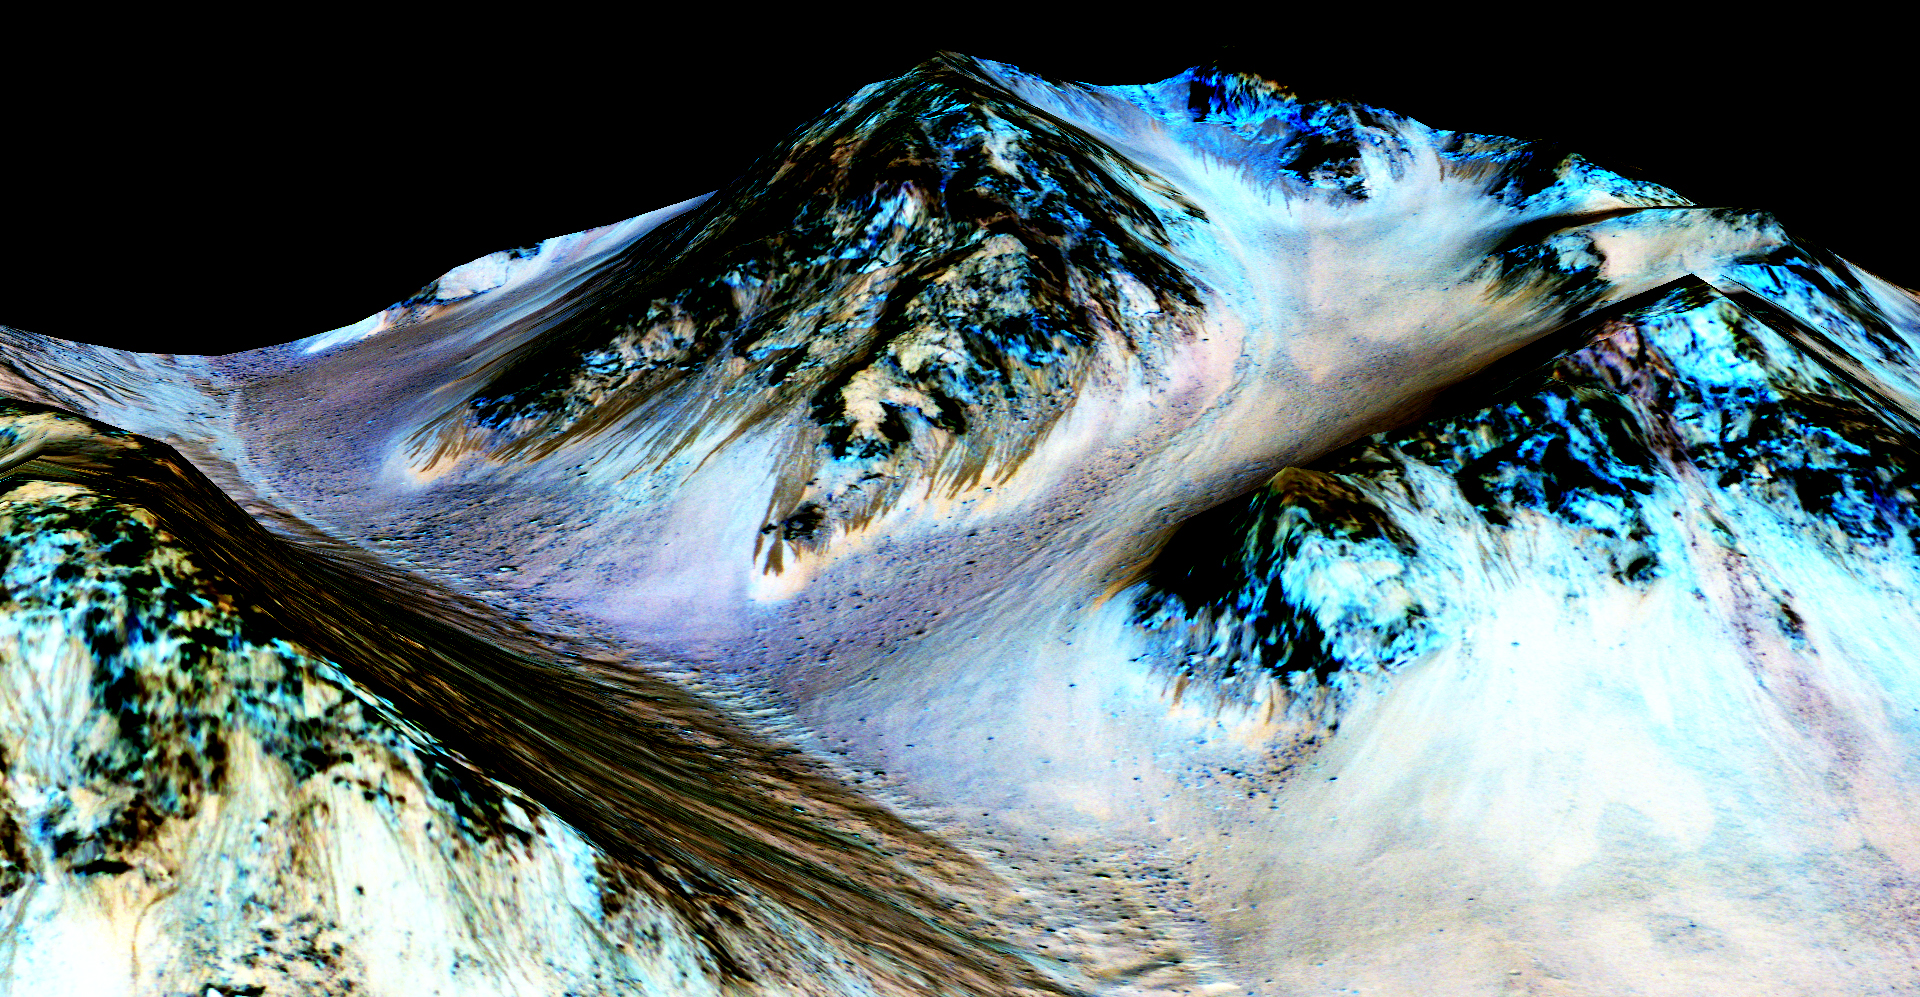 water on mars the story so far news astrobiology recurring lineae on slopes at hale crater mars the imaging and topographical information in this processed false color view come from the high